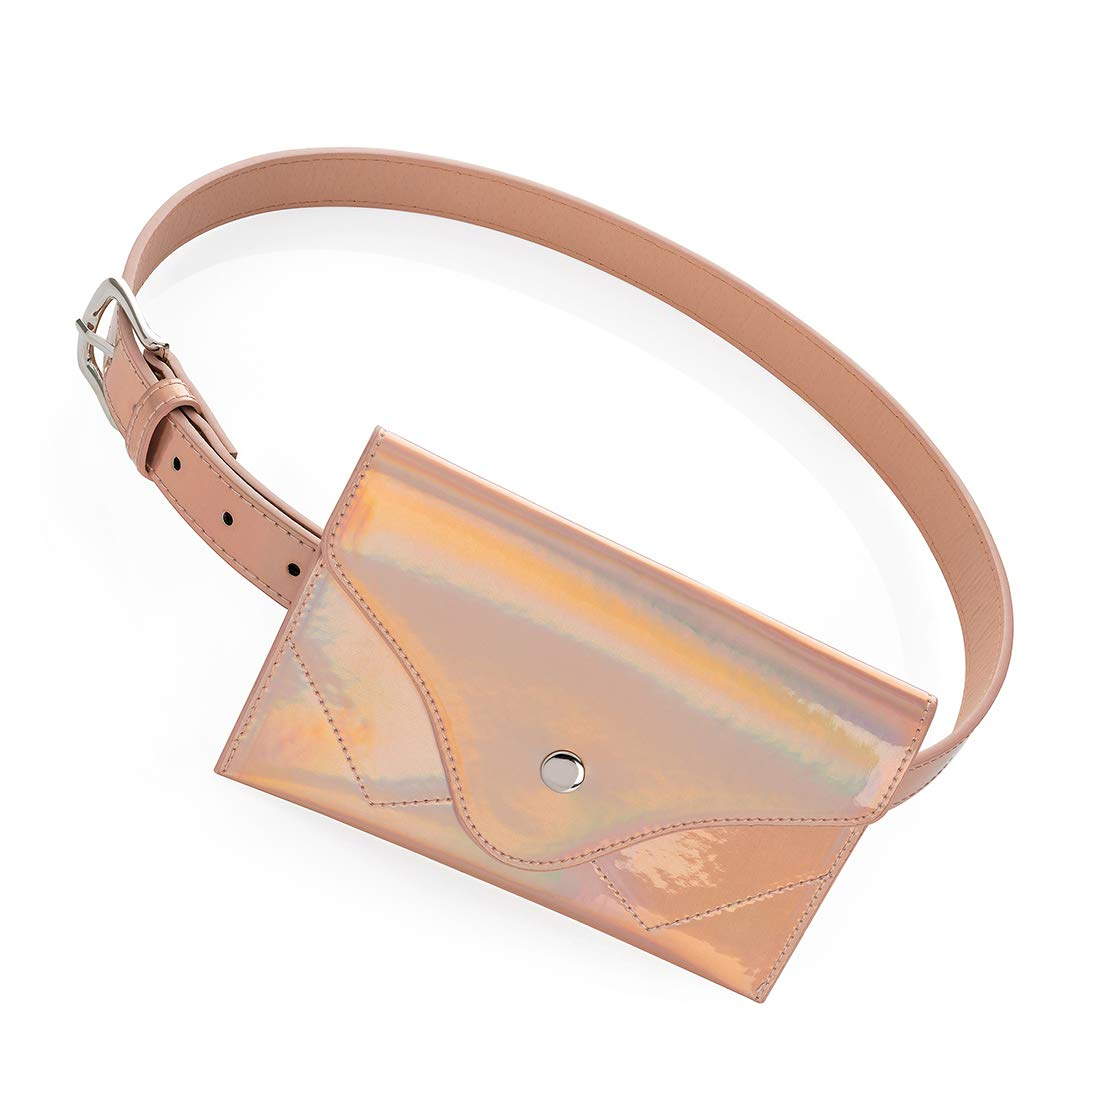 All Accessories Multifunctional Adjustable Travel Friendly Holographic Mini  Fashion Waist and Fanny Pack Belt Bag with fdcb6ecb251f4